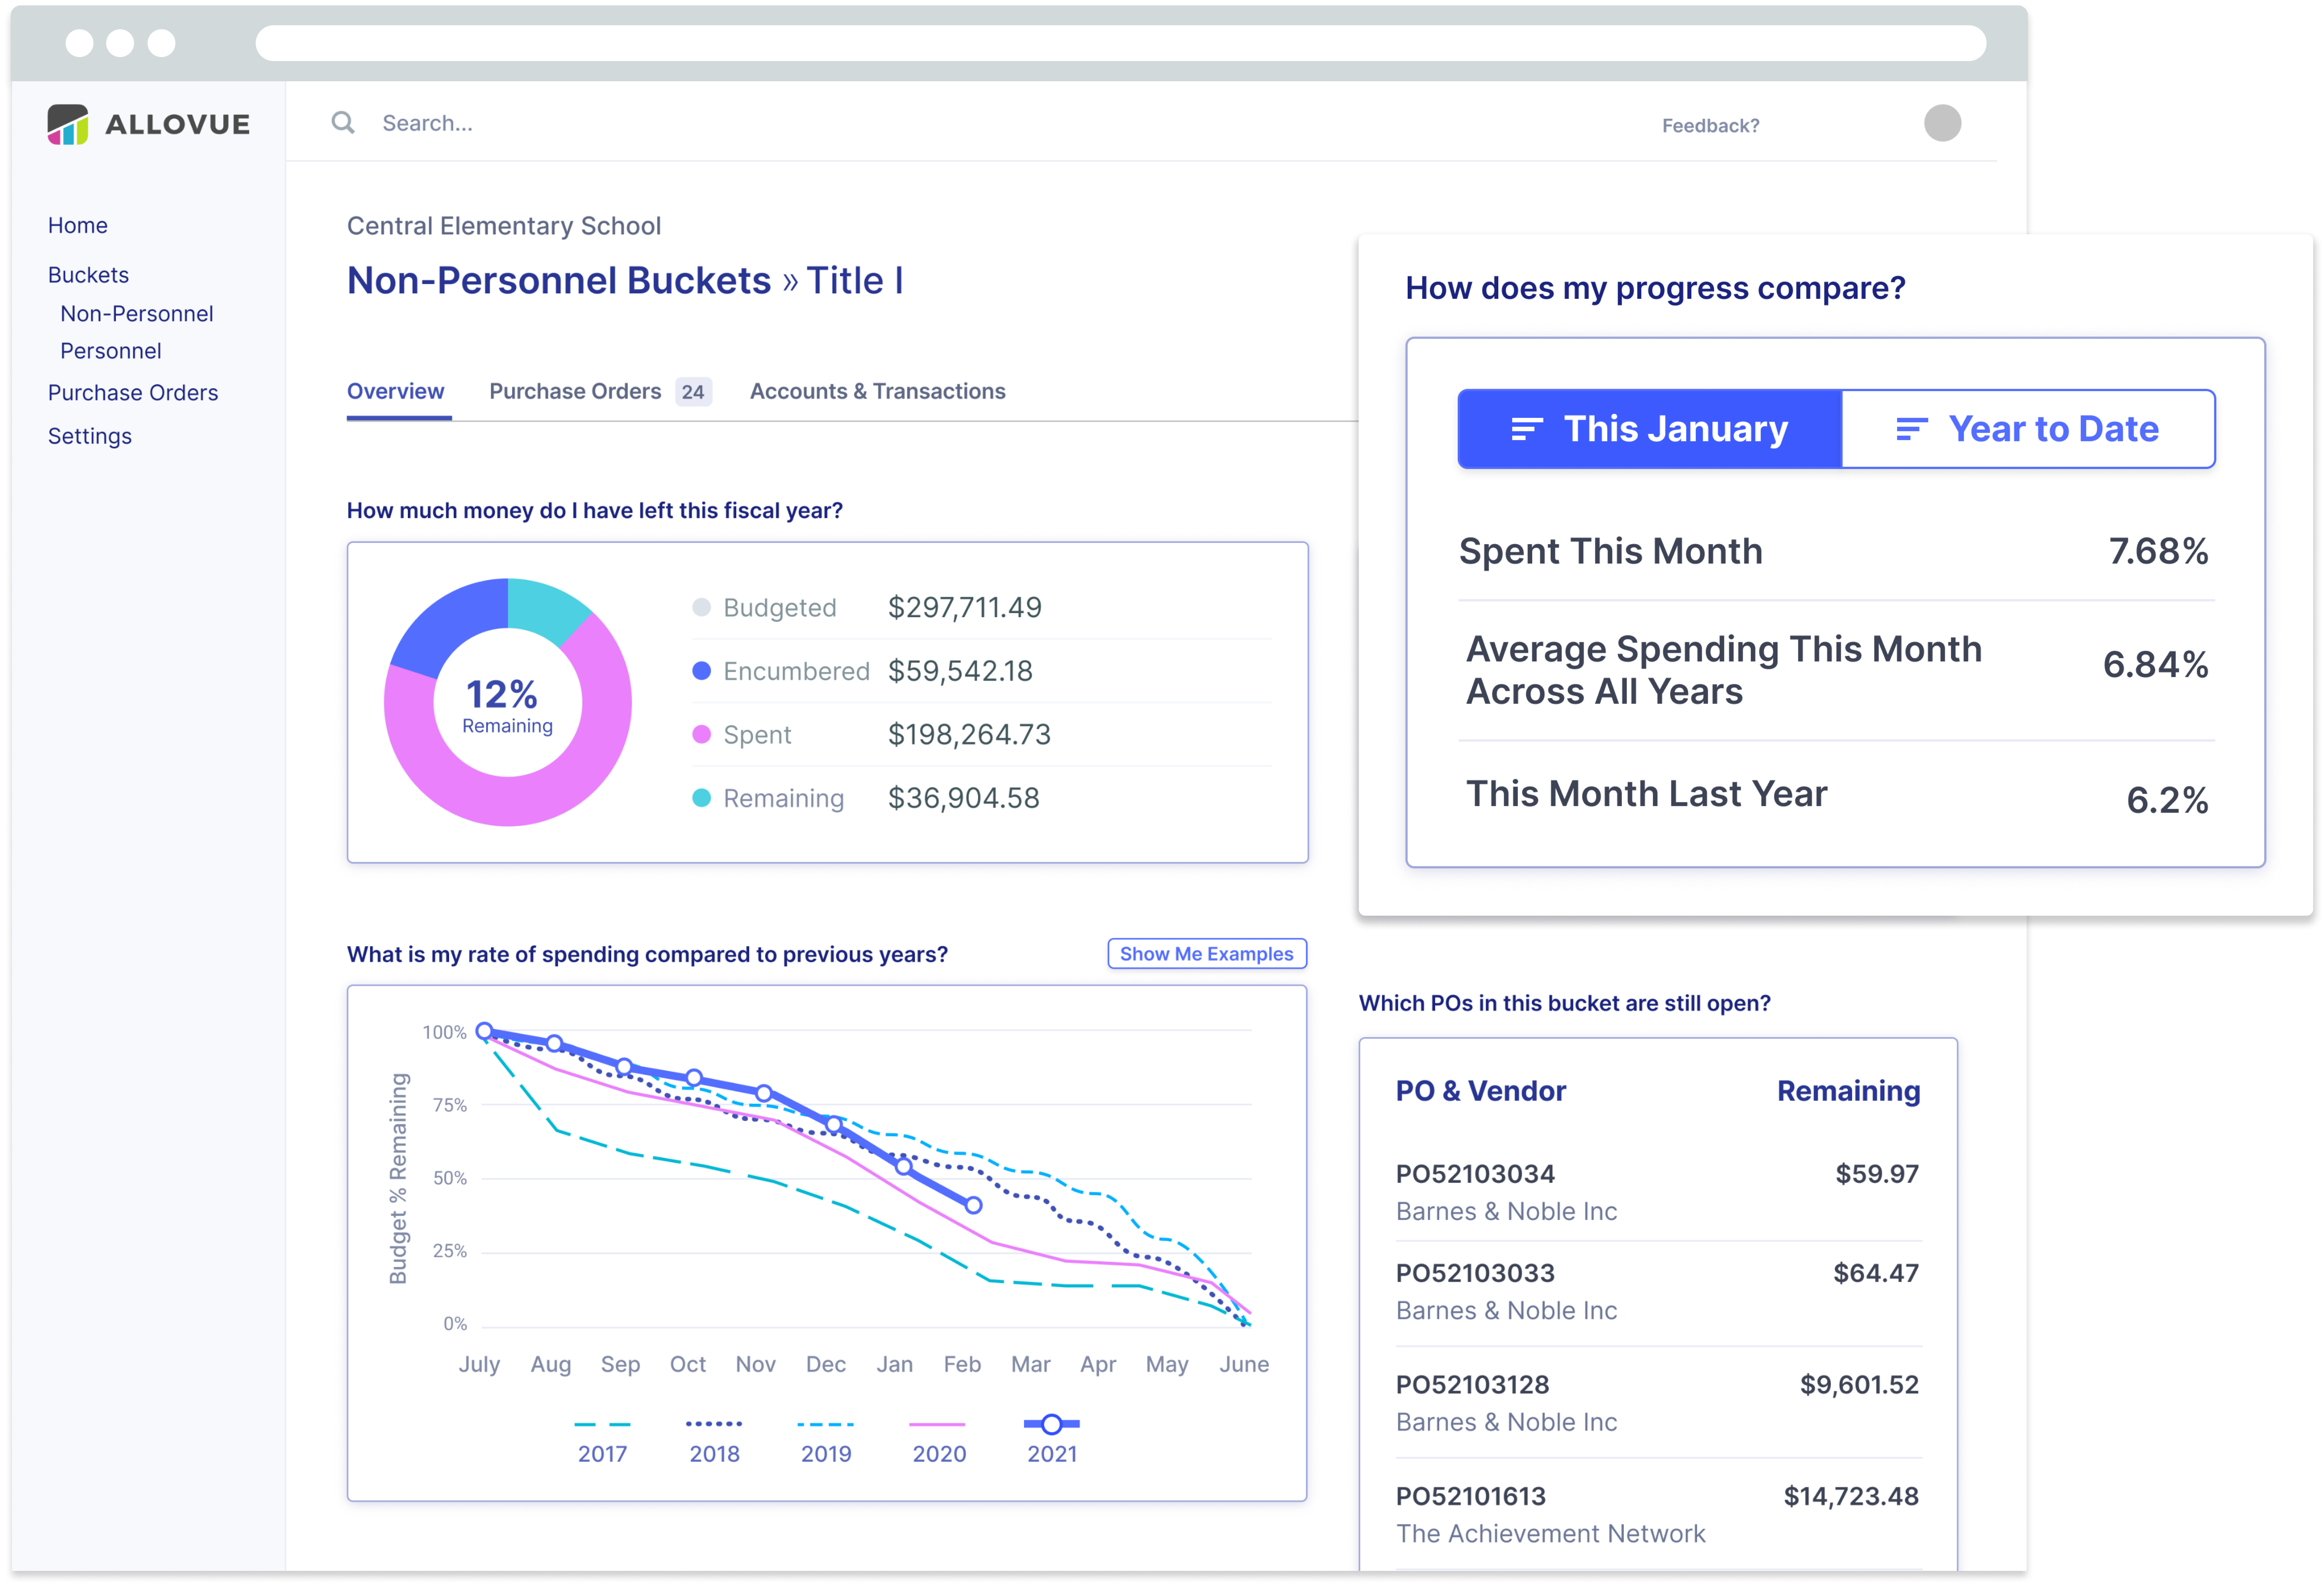 Track your progress and compare spending to previous years.